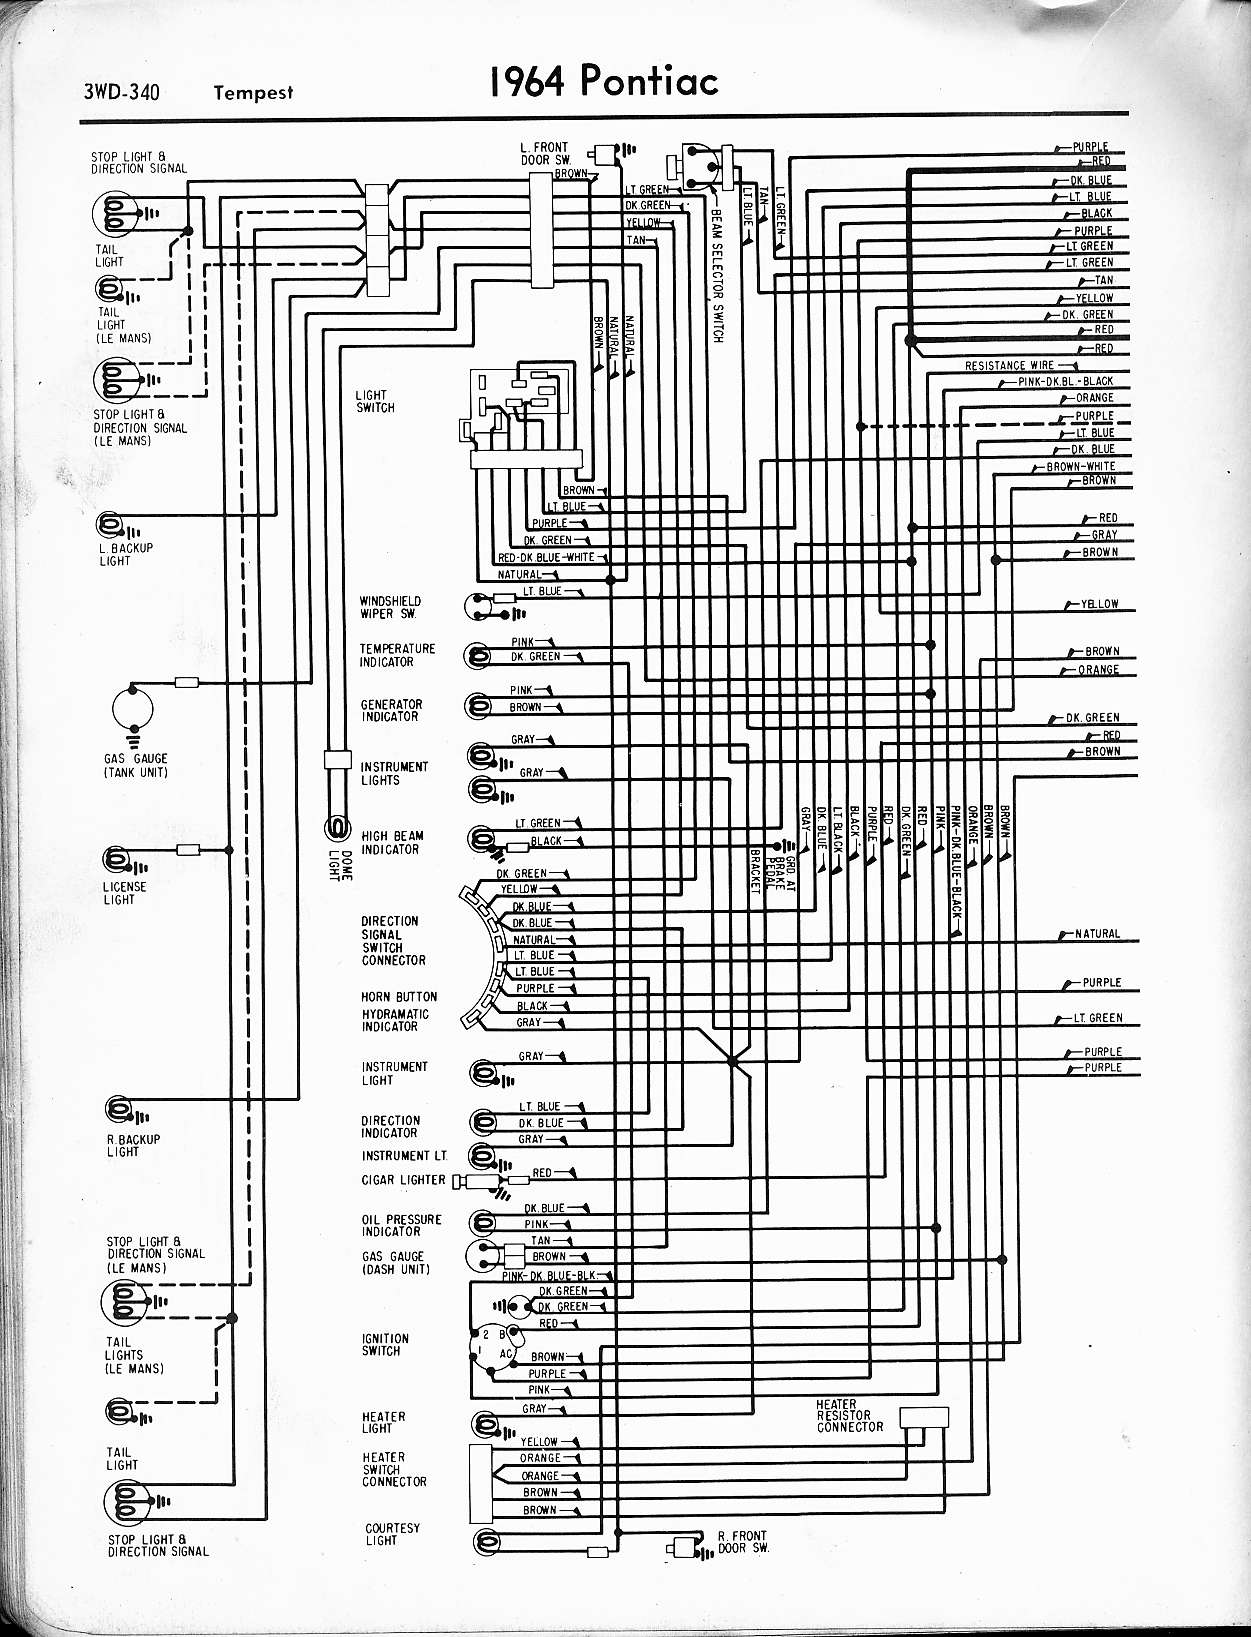 Heater Wiring Diagram 1968 Ford Galaxie Library 65 Schematic 57 Diagrams 1959 V8 Fairlane 500 300 Custom 1964 Tempest Left Page